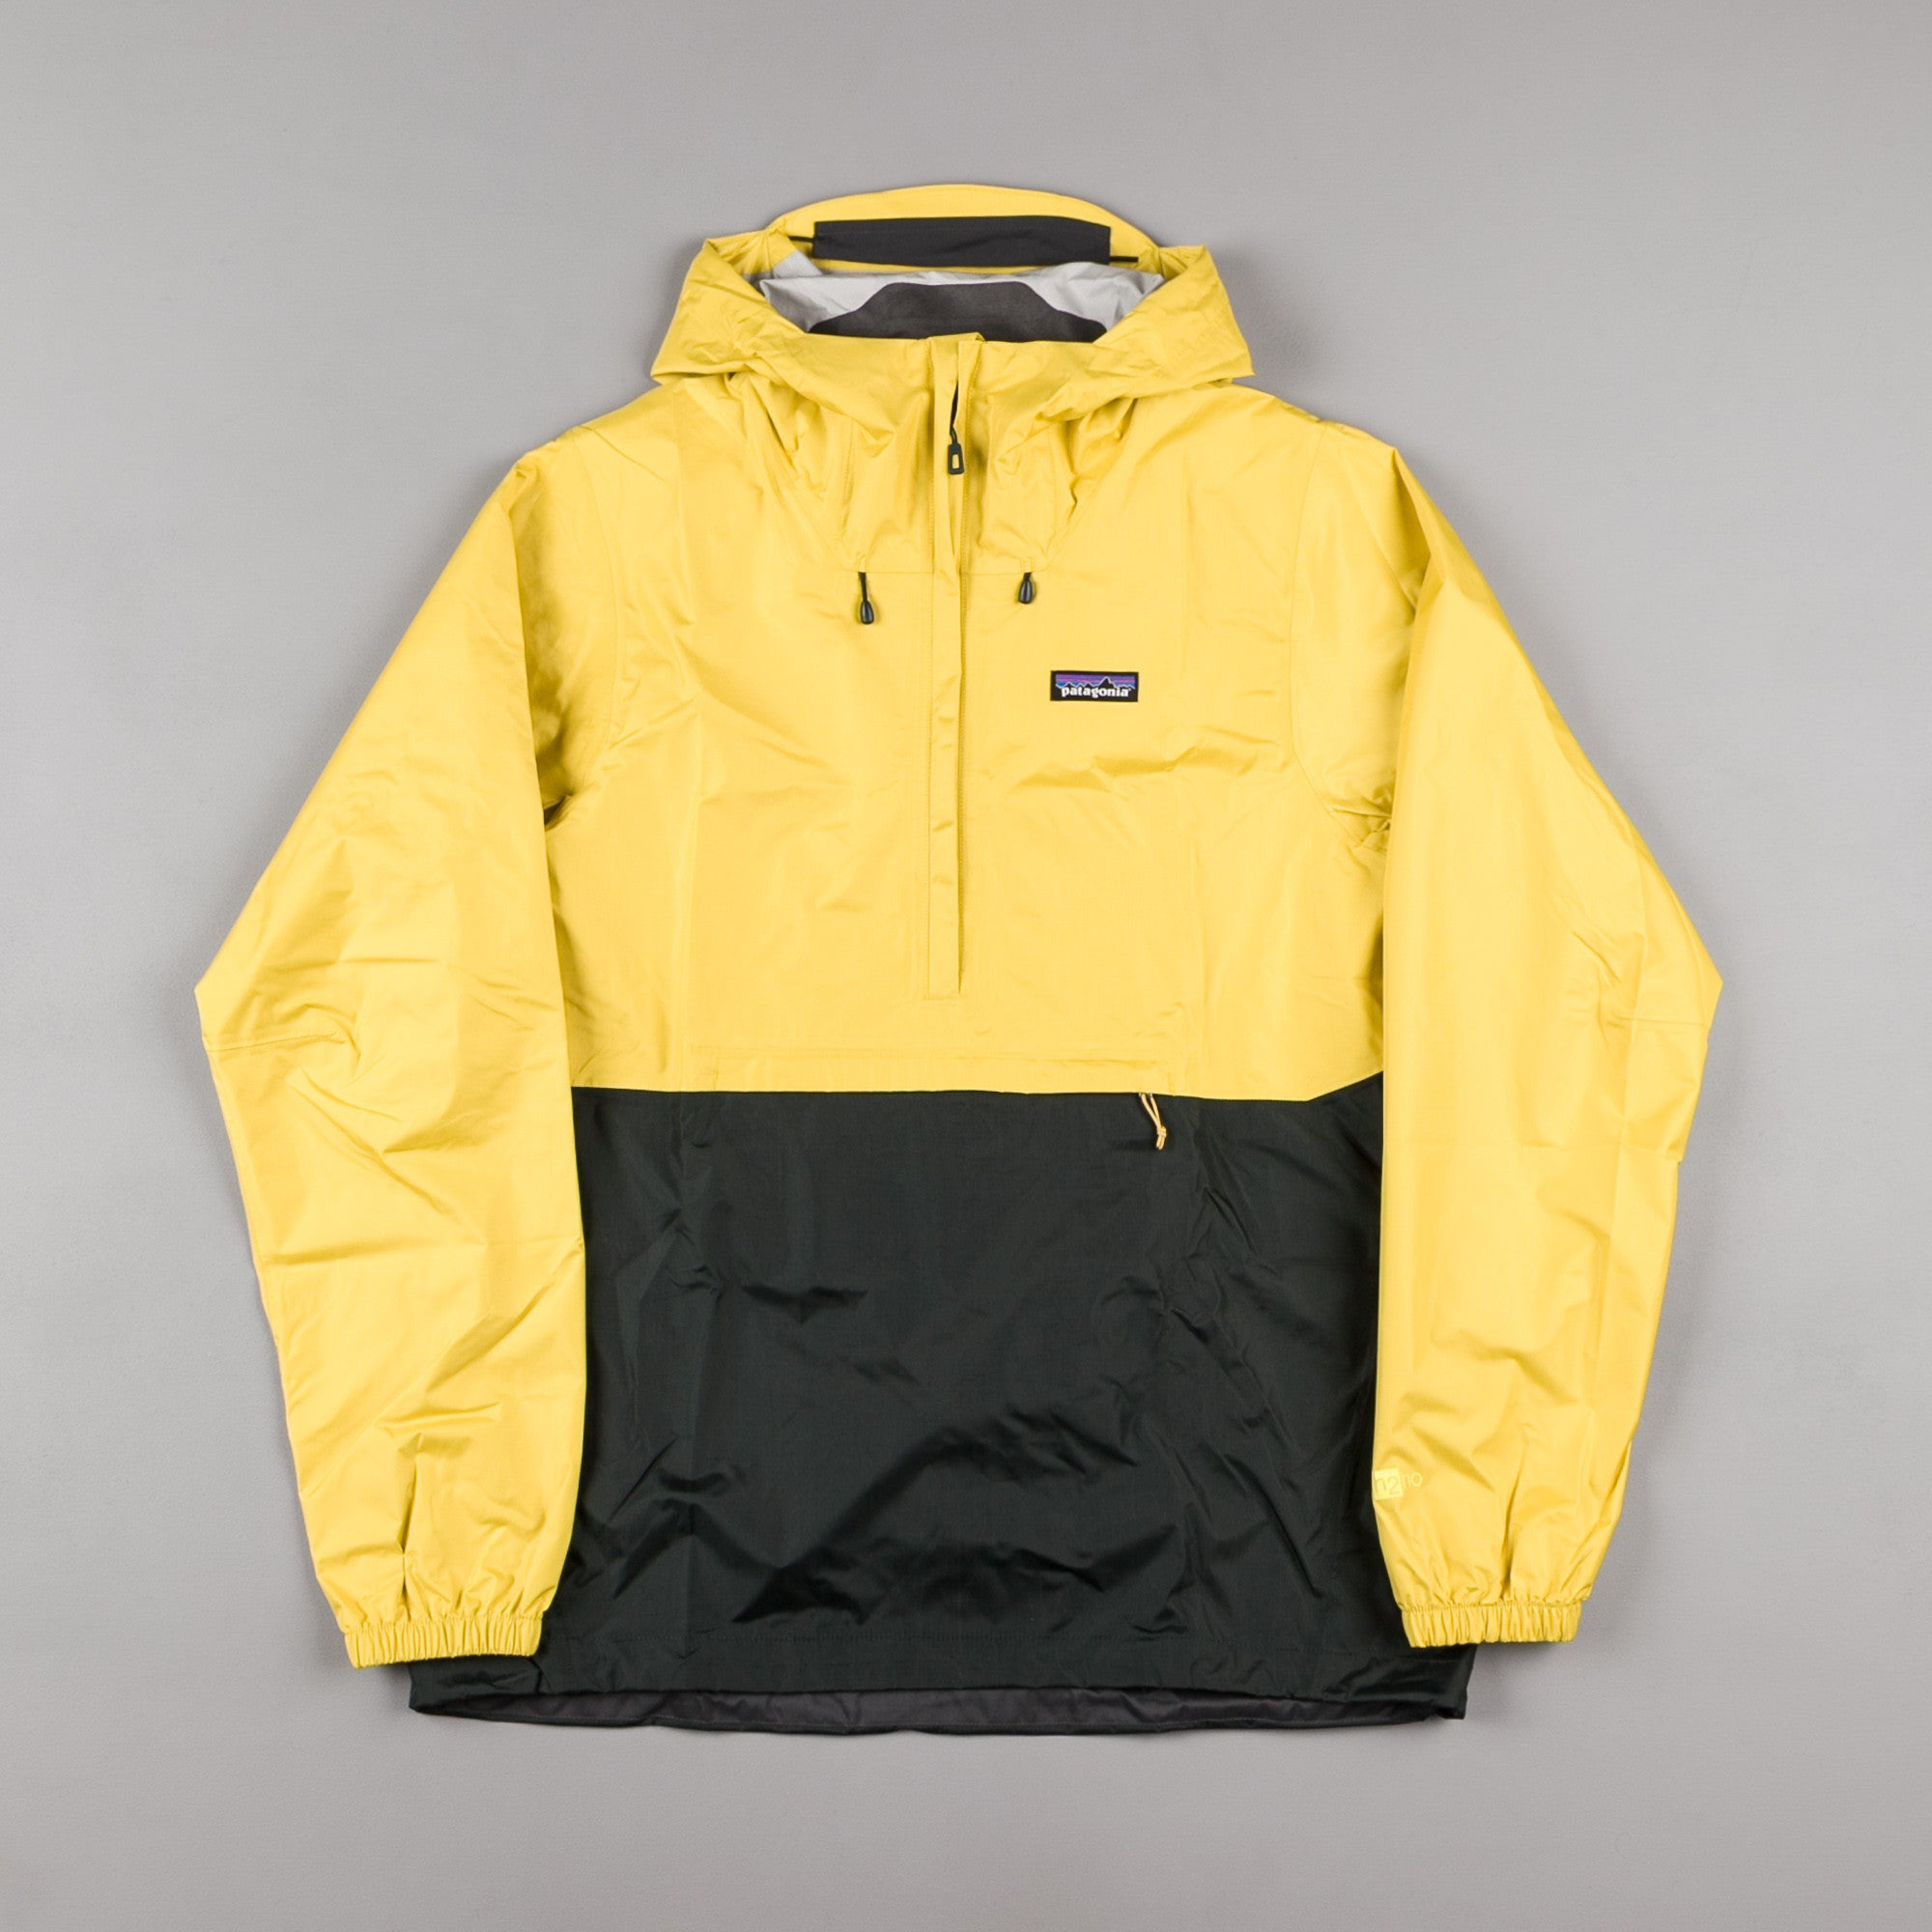 Patagonia Torrentshell Pullover Jacket - Yosemite Yellow